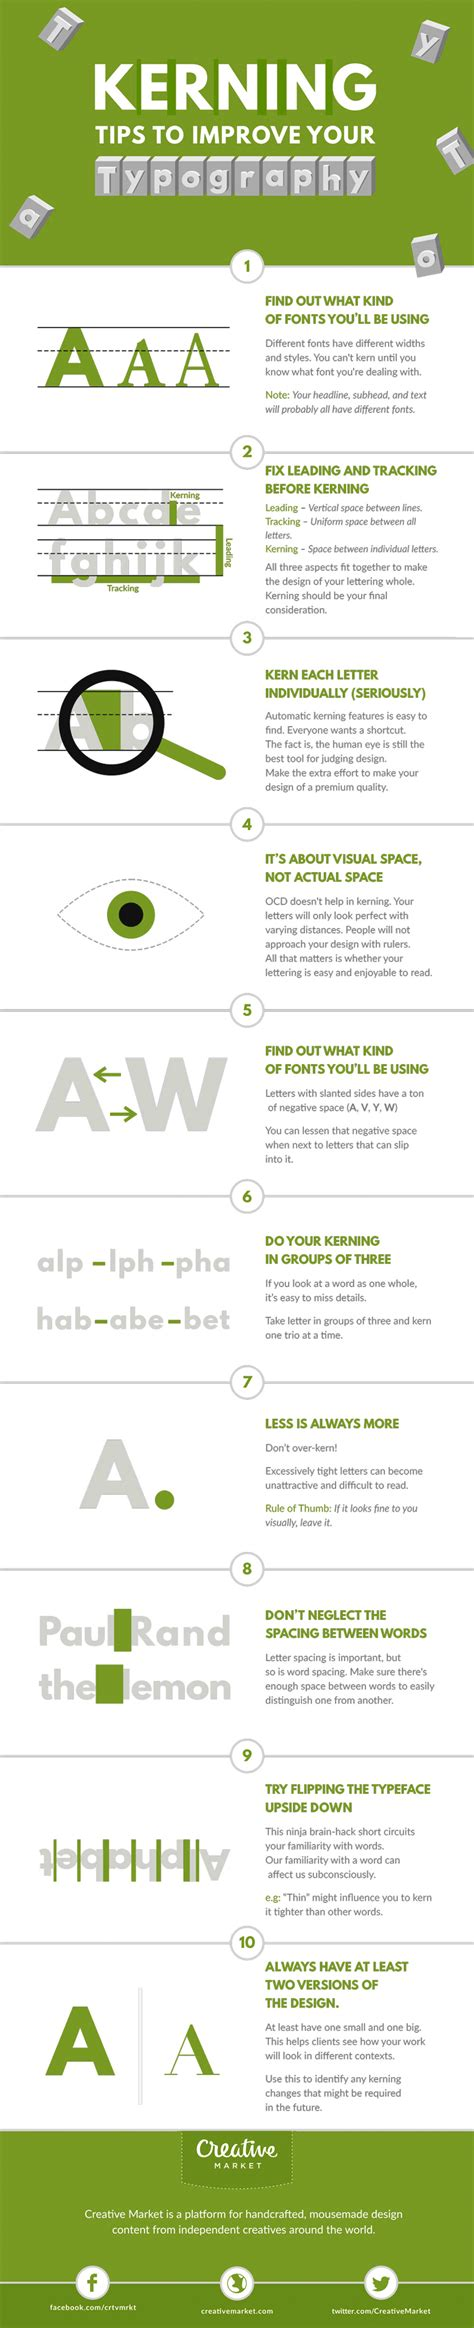 typography tips 10 useful kerning tips to improve your typography